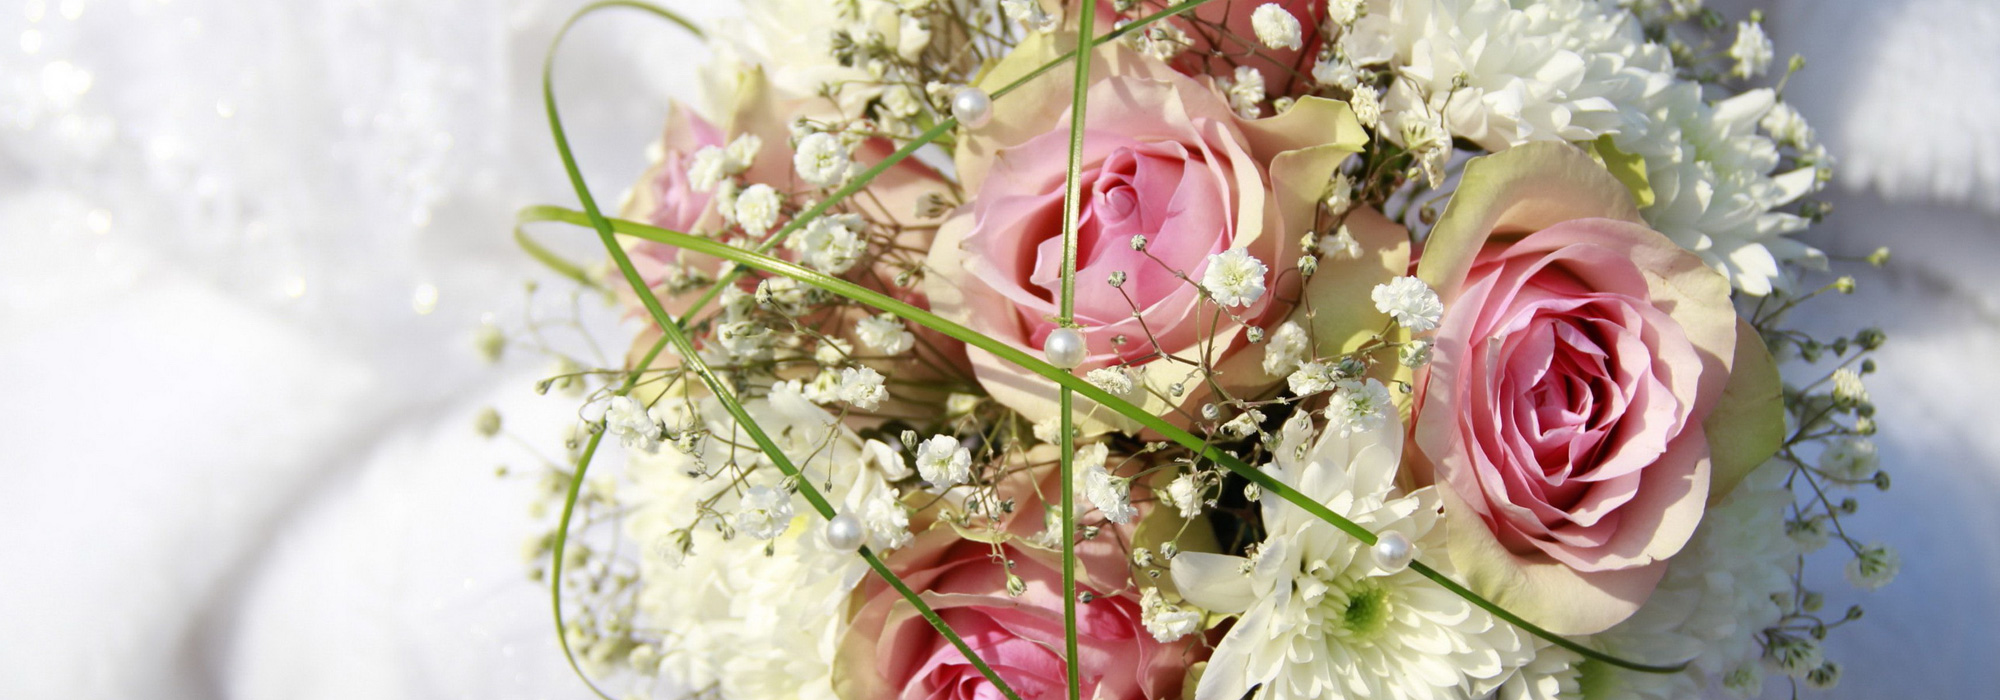 Wedding-Flowers-Banner-2